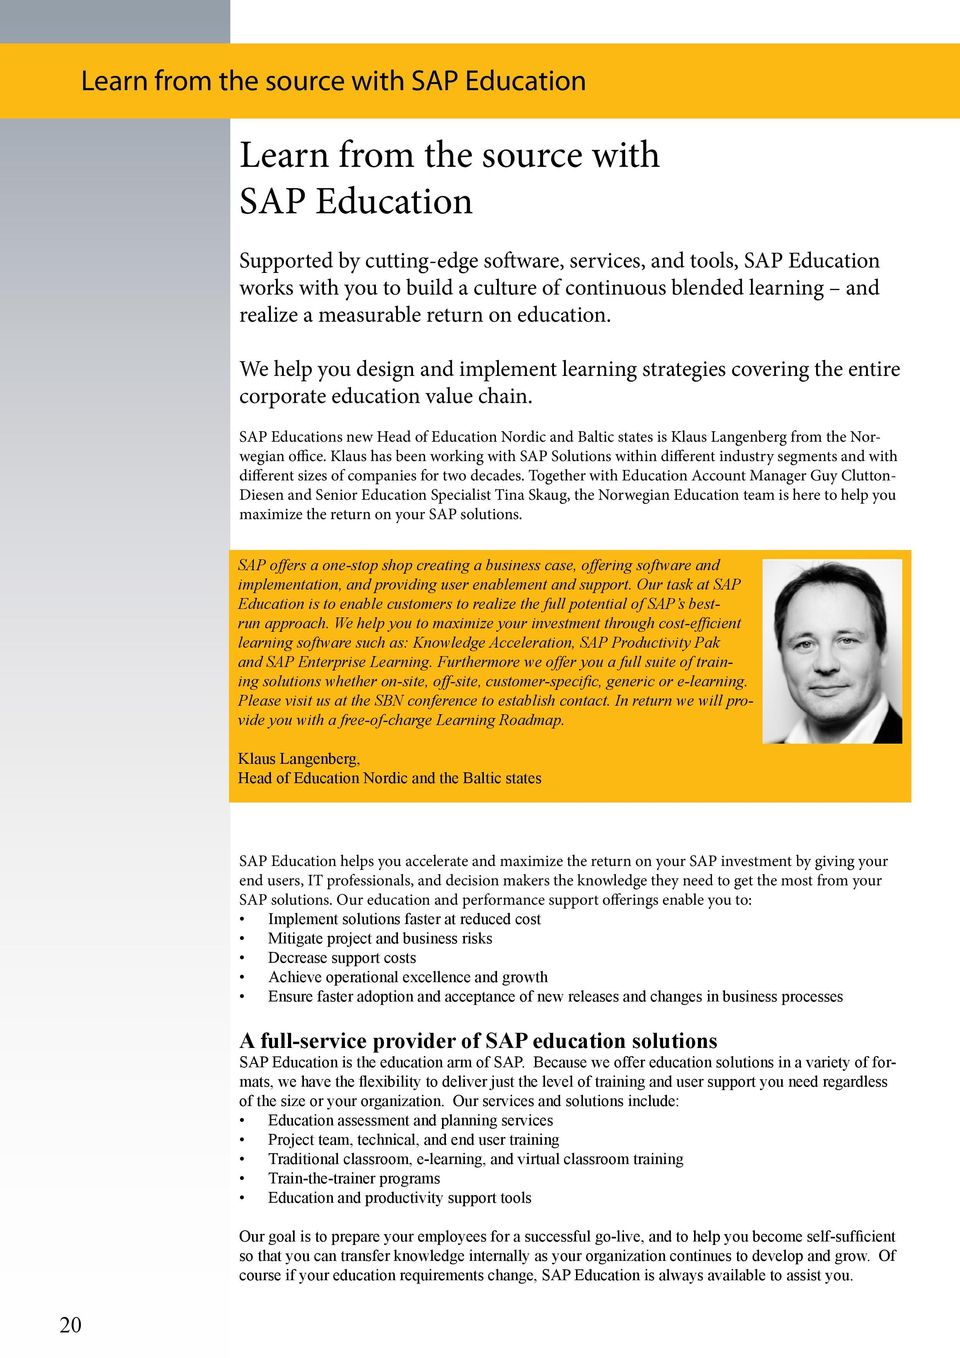 SAP Educations new Head of Education Nordic and Baltic states is Klaus Langenberg from the Norwegian office.